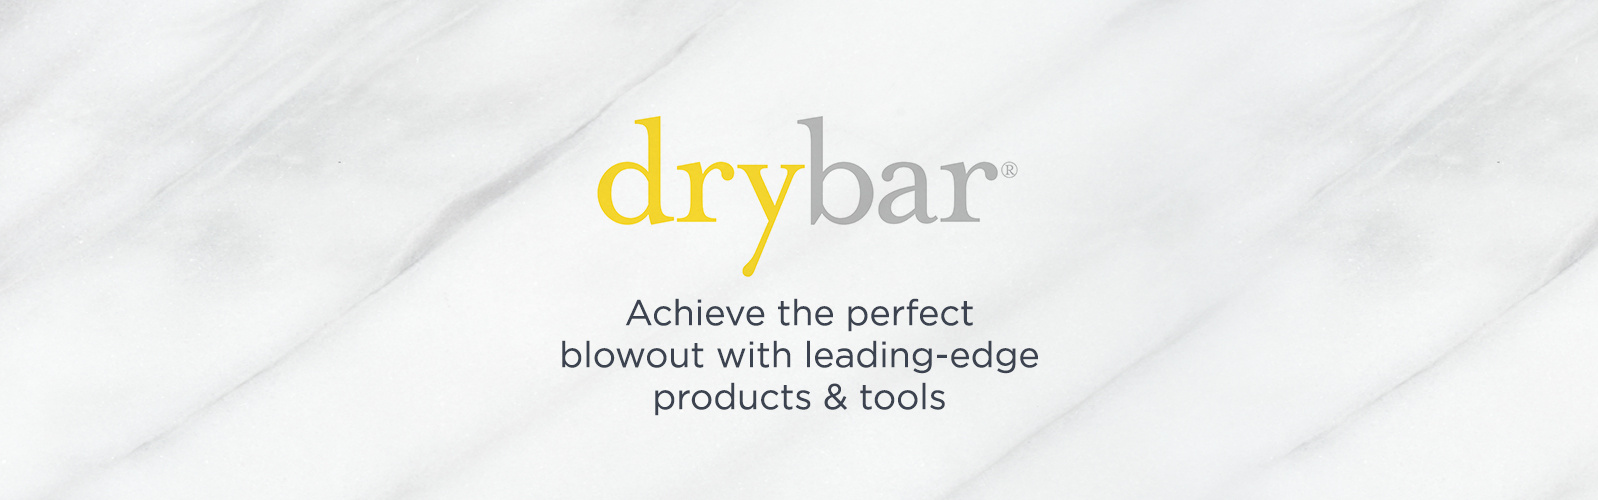 Drybar, Achieve the perfect blowout with leading-edge products & tools